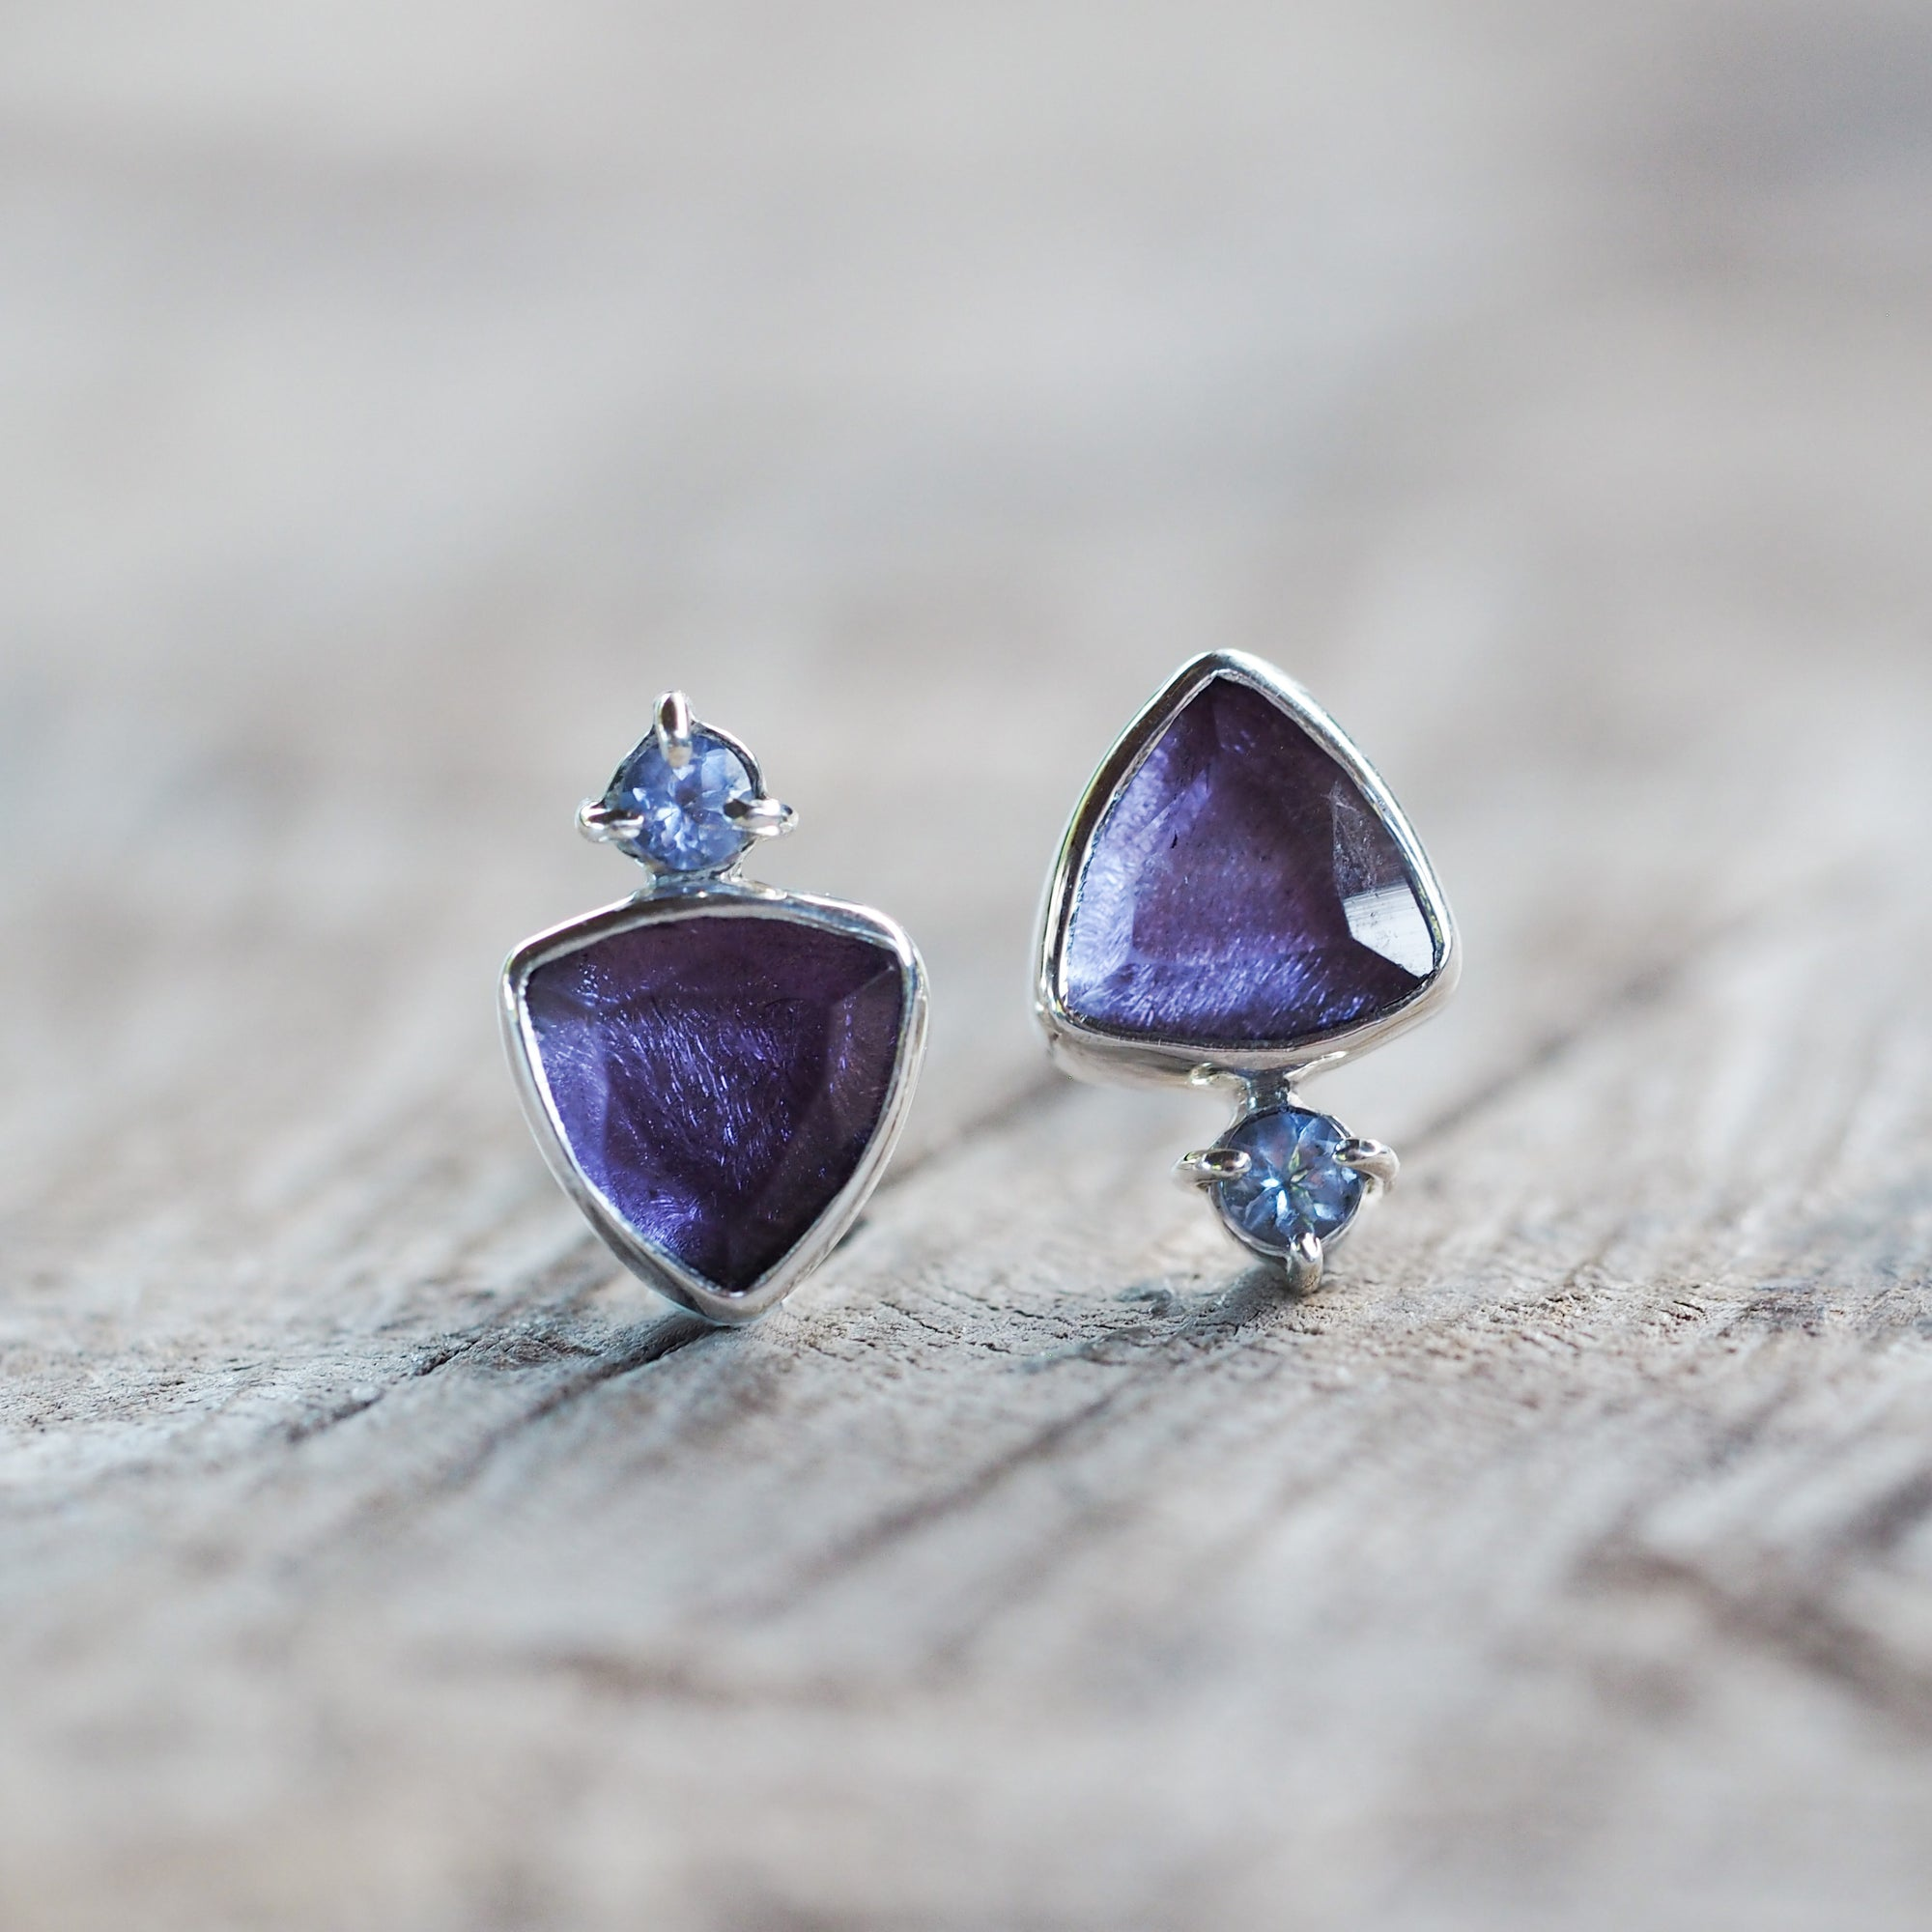 Mismatched Amethyst and Tanzanite Earrings